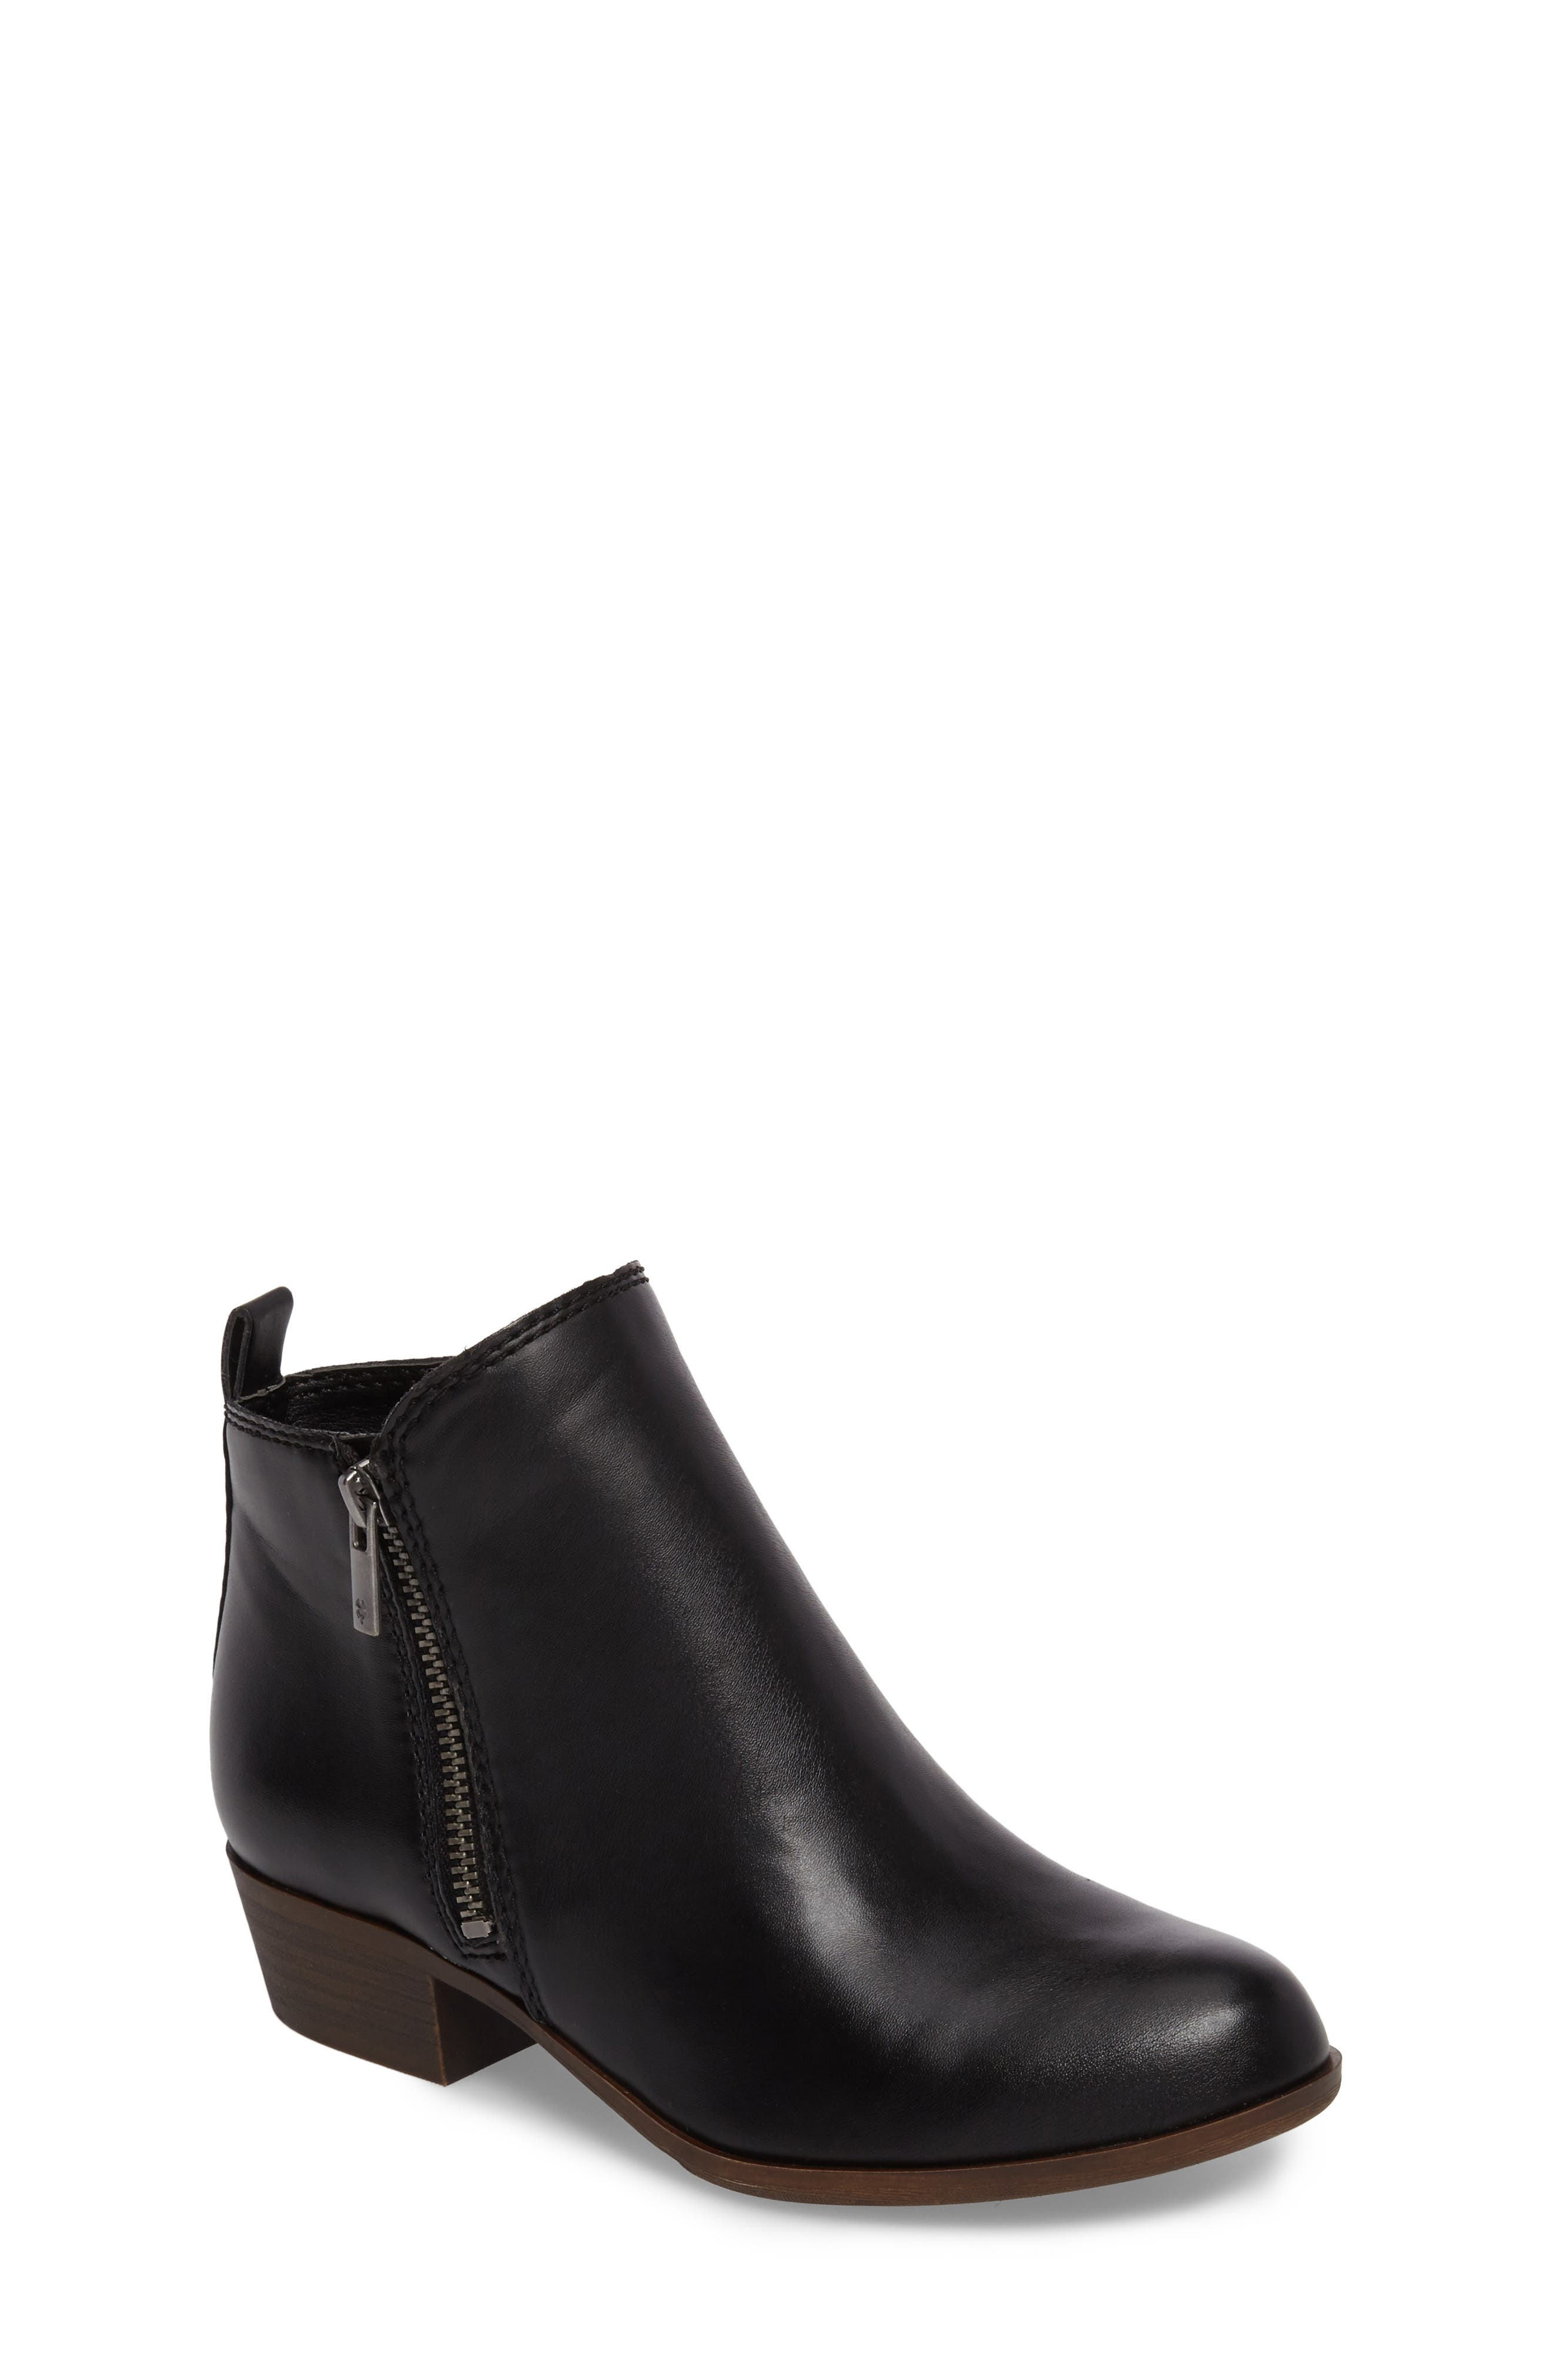 LUCKY BRAND Basel Double-Zip Bootie, Main, color, 001